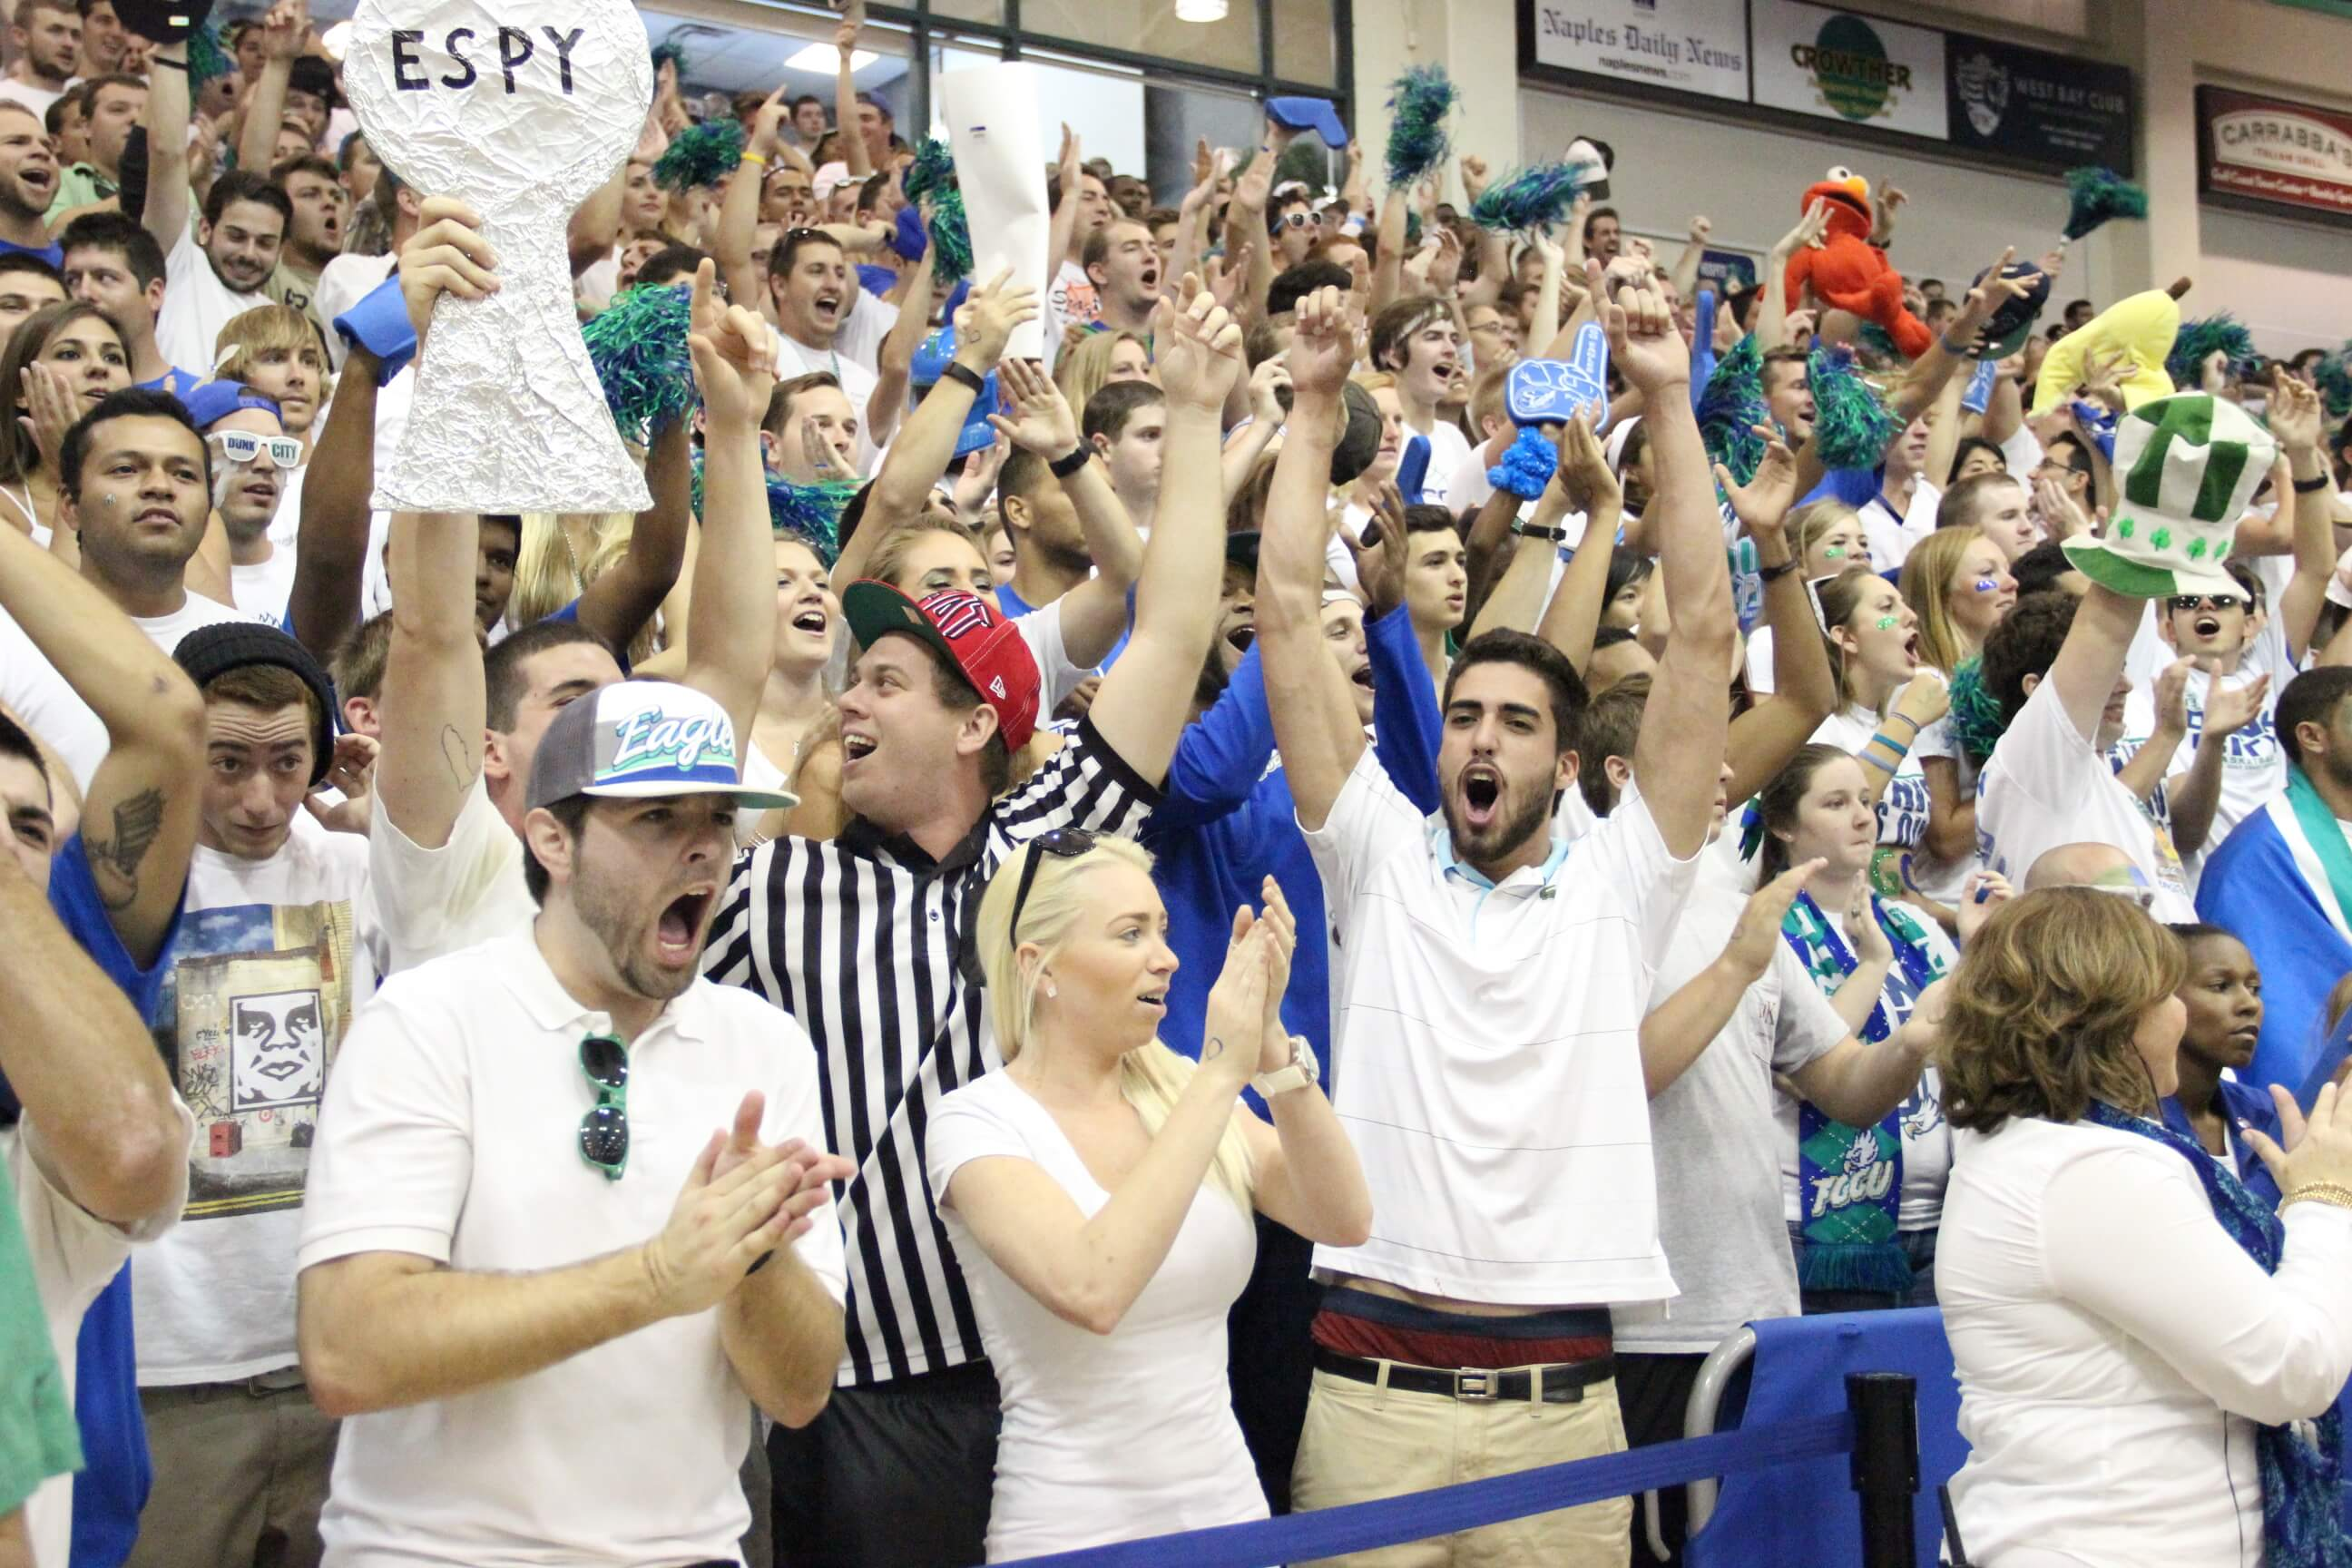 Sunday's A-Sun men's hoops championship to be sold out